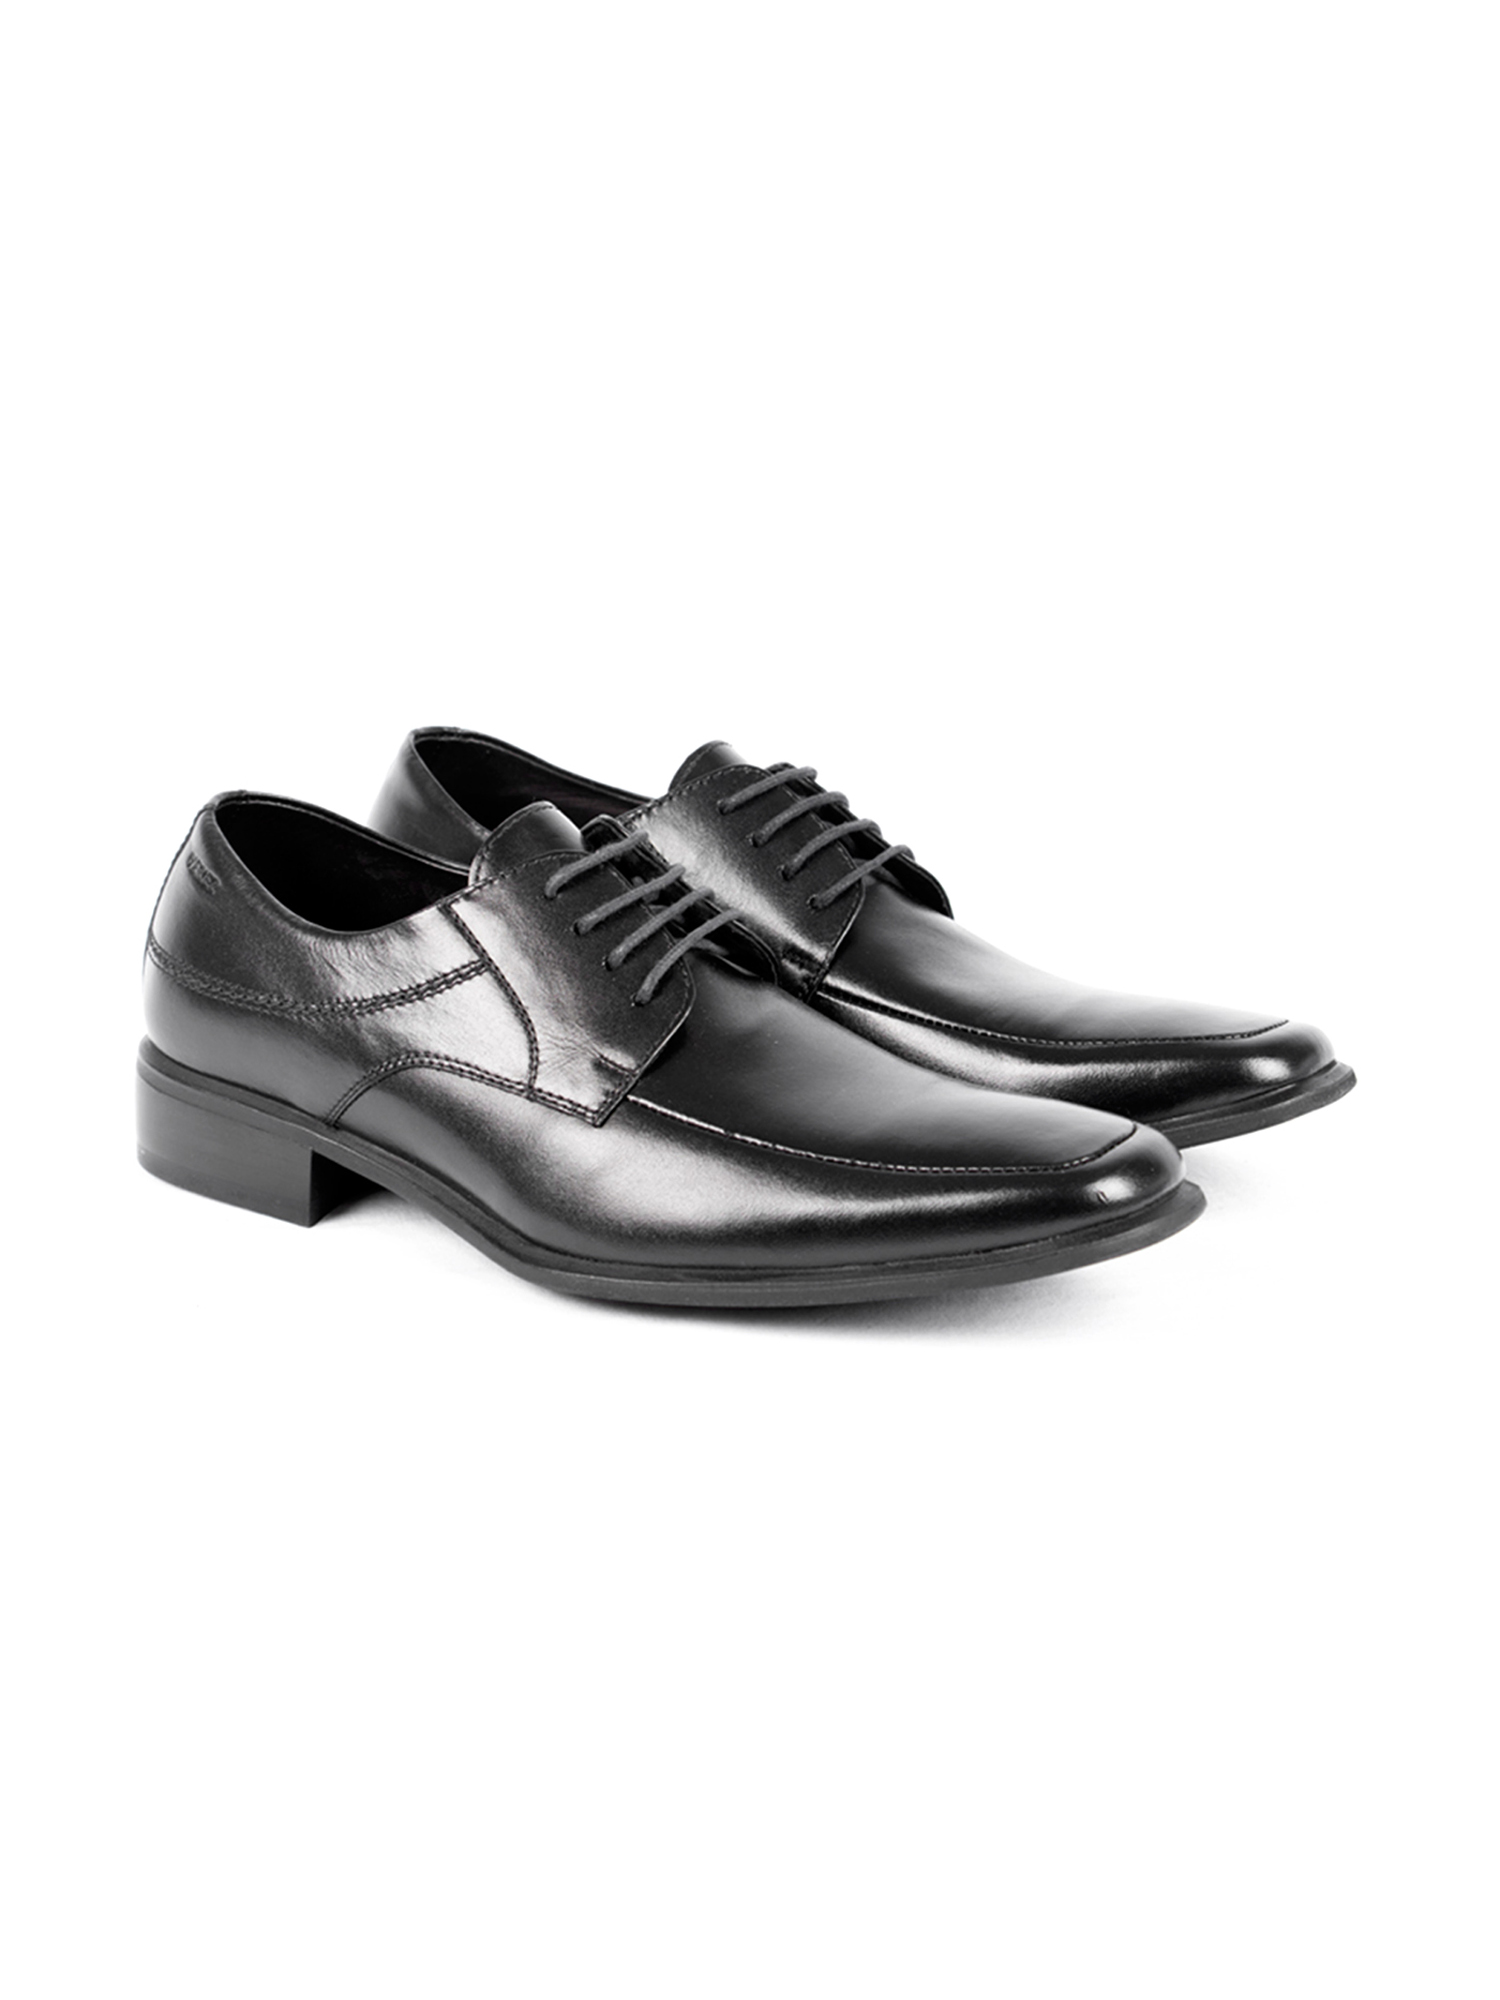 VELEZ Mens Genuine Colombian Leather Classic Oxford Shoes | Zapatos Colombianos by Colombia